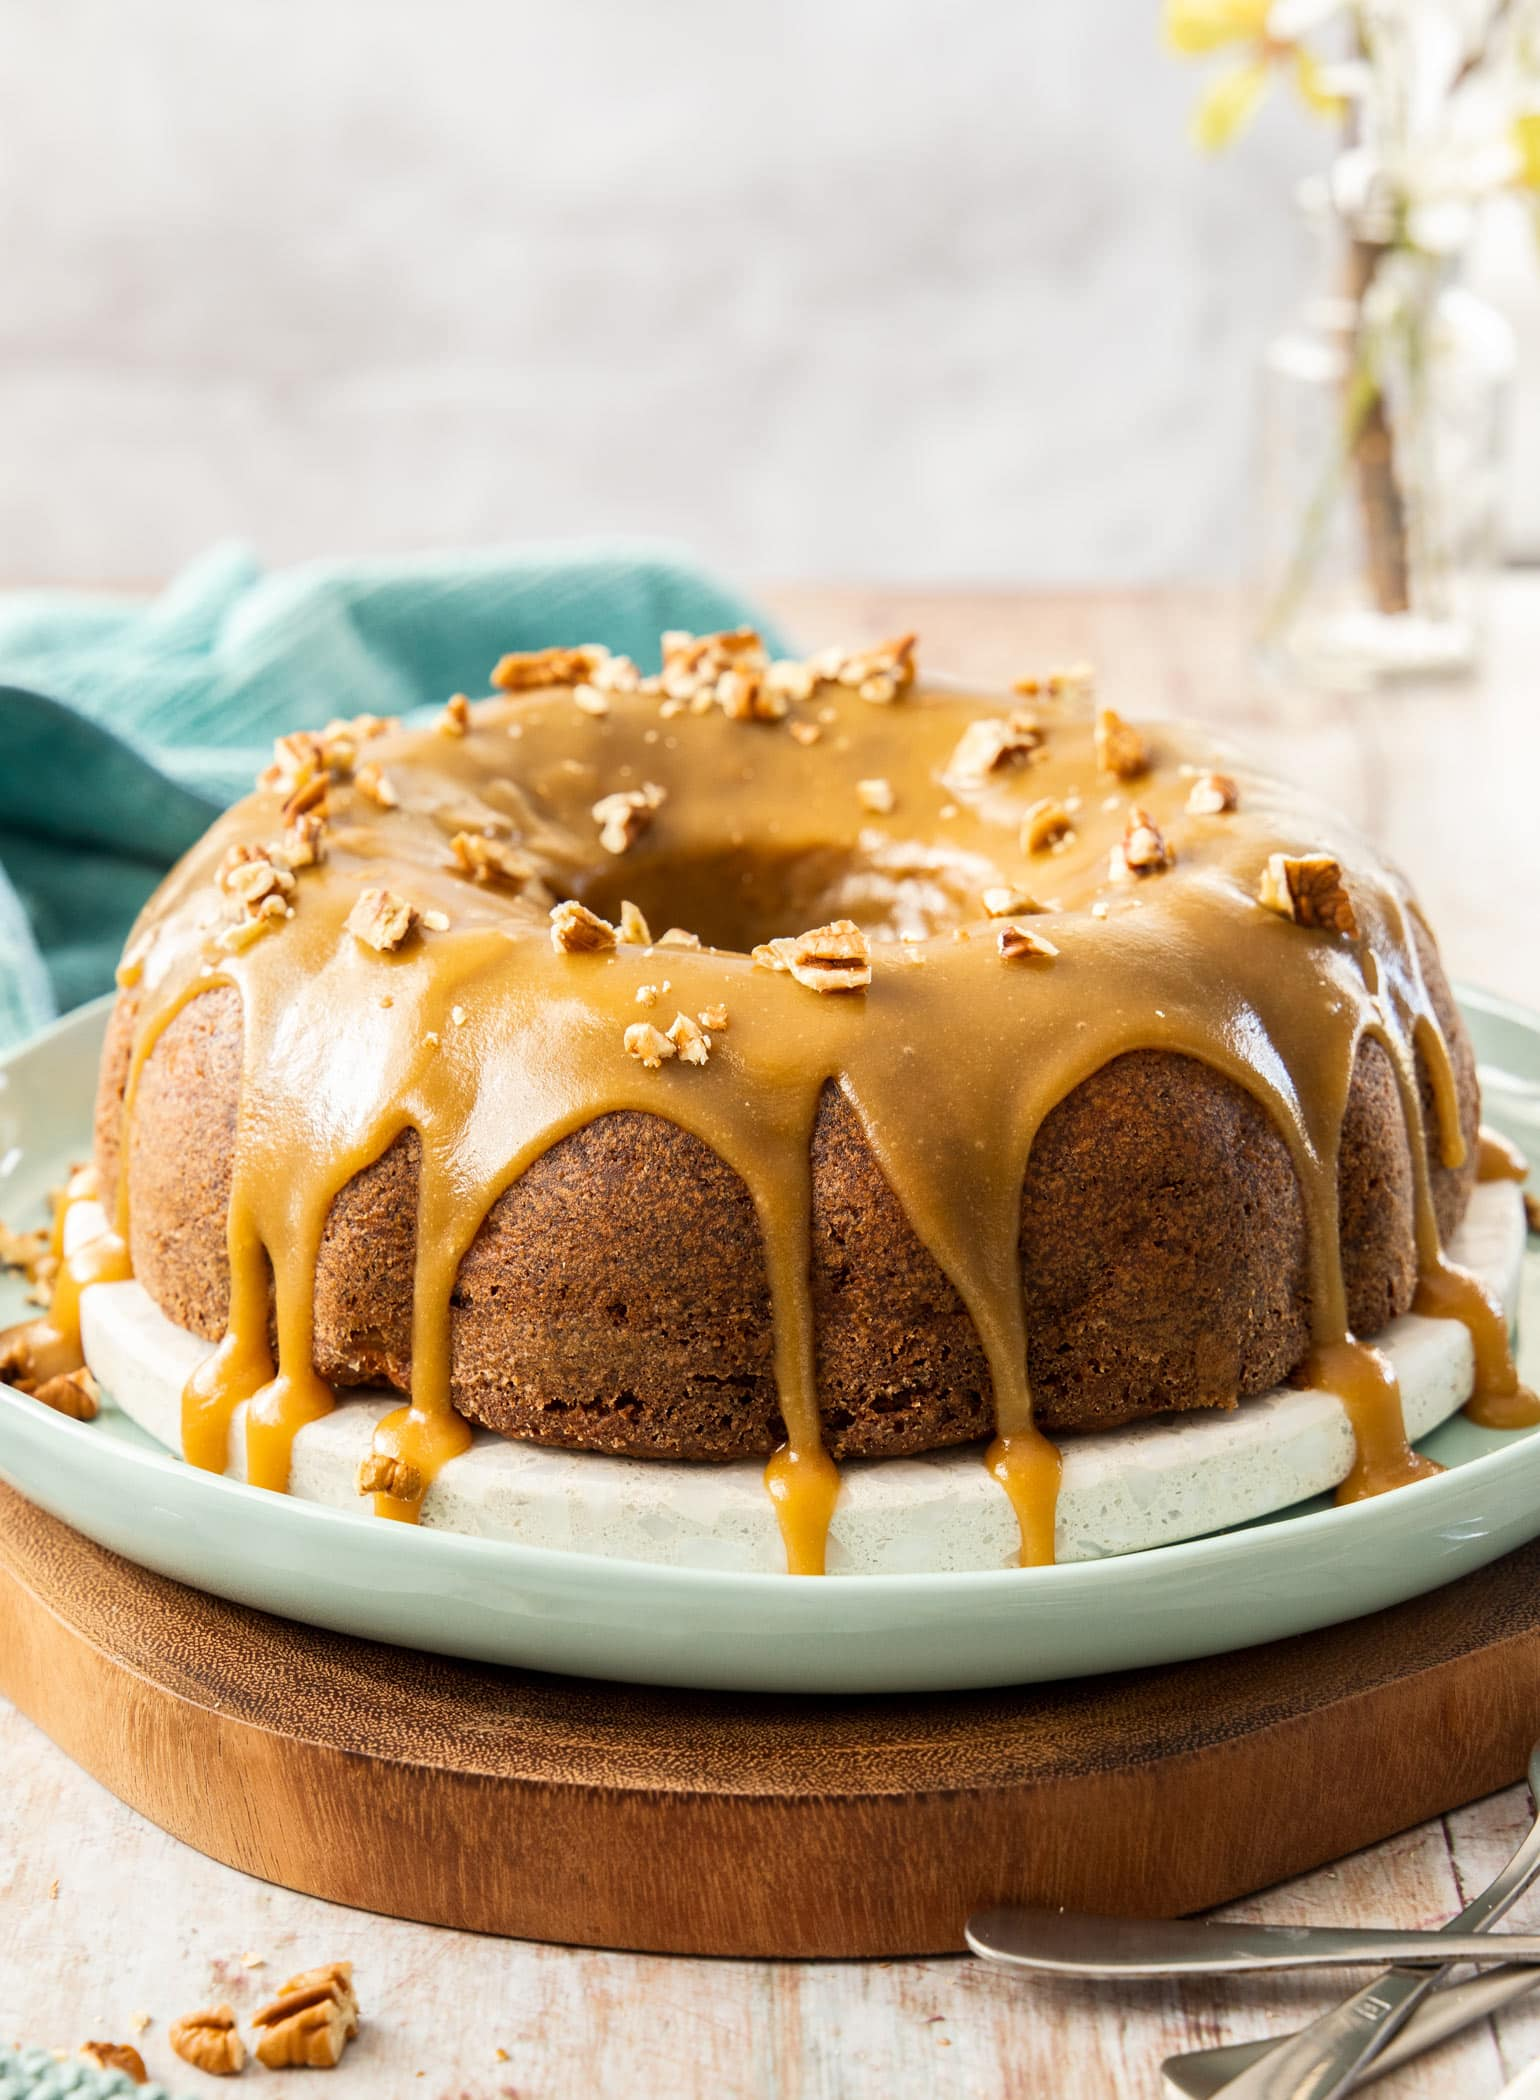 A bundt cake with caramel icing dripping down it, on a white and green platter. It sits on a wooden board